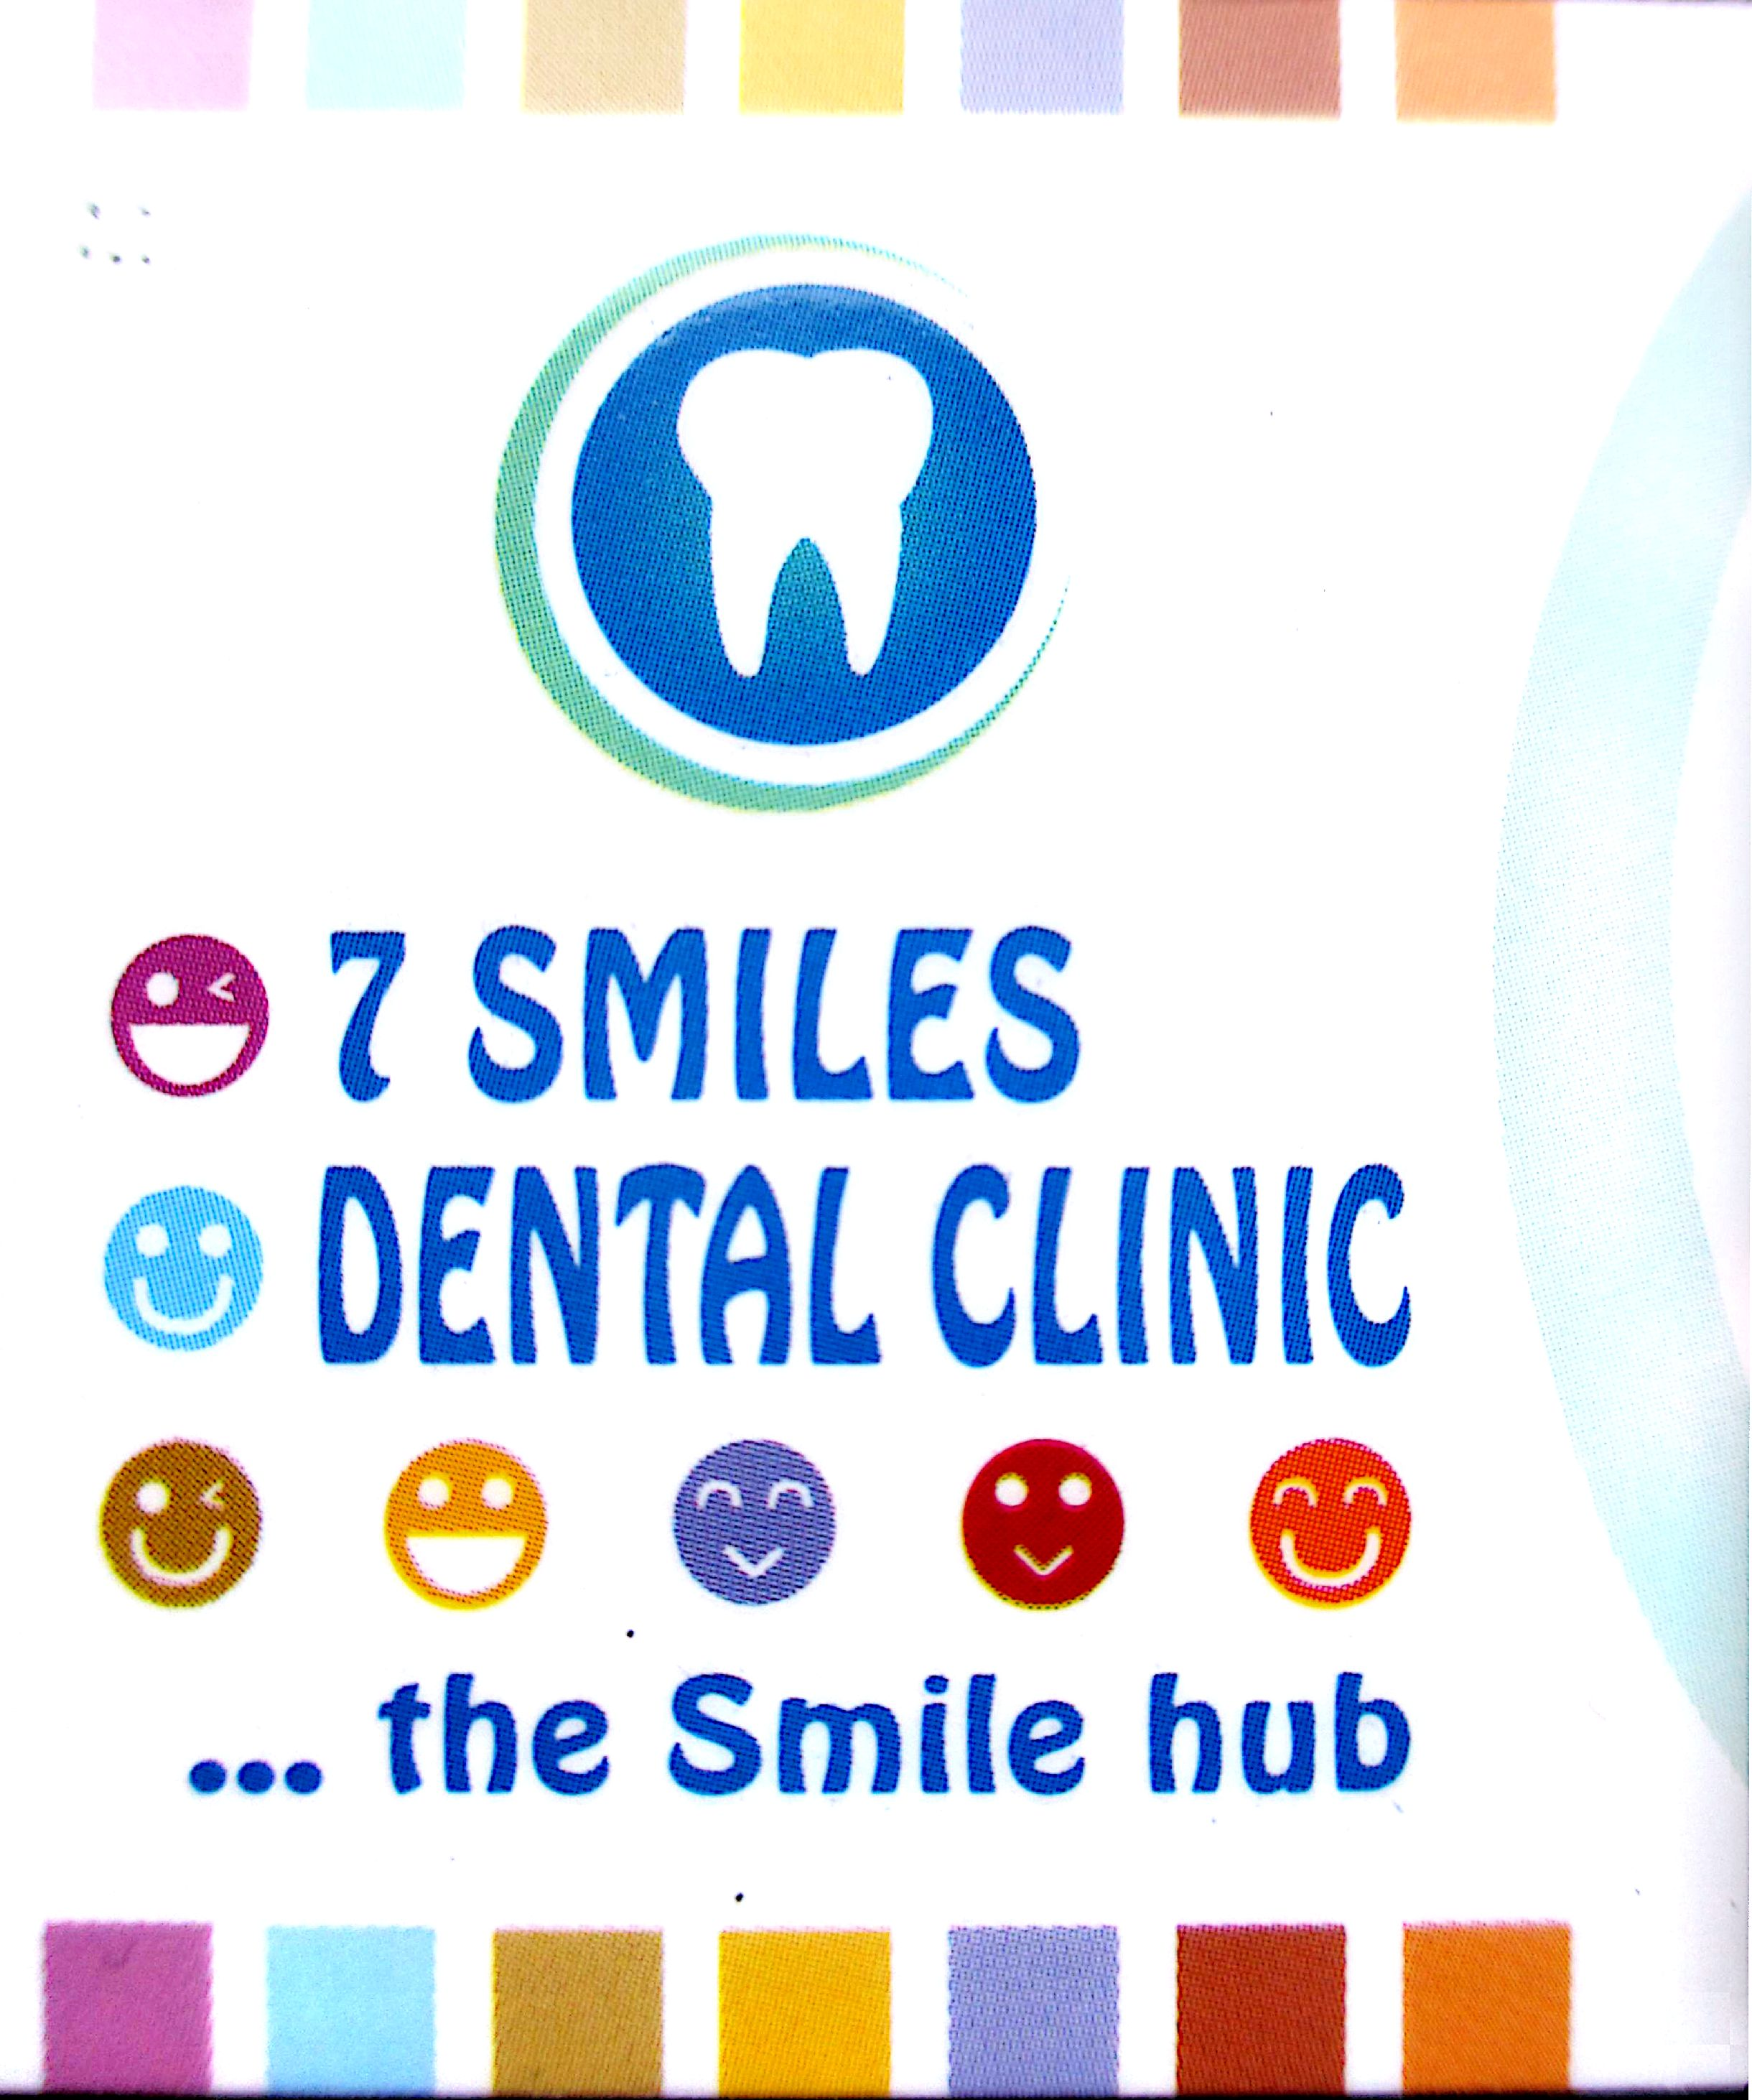 7 Smiles Dental Clinic